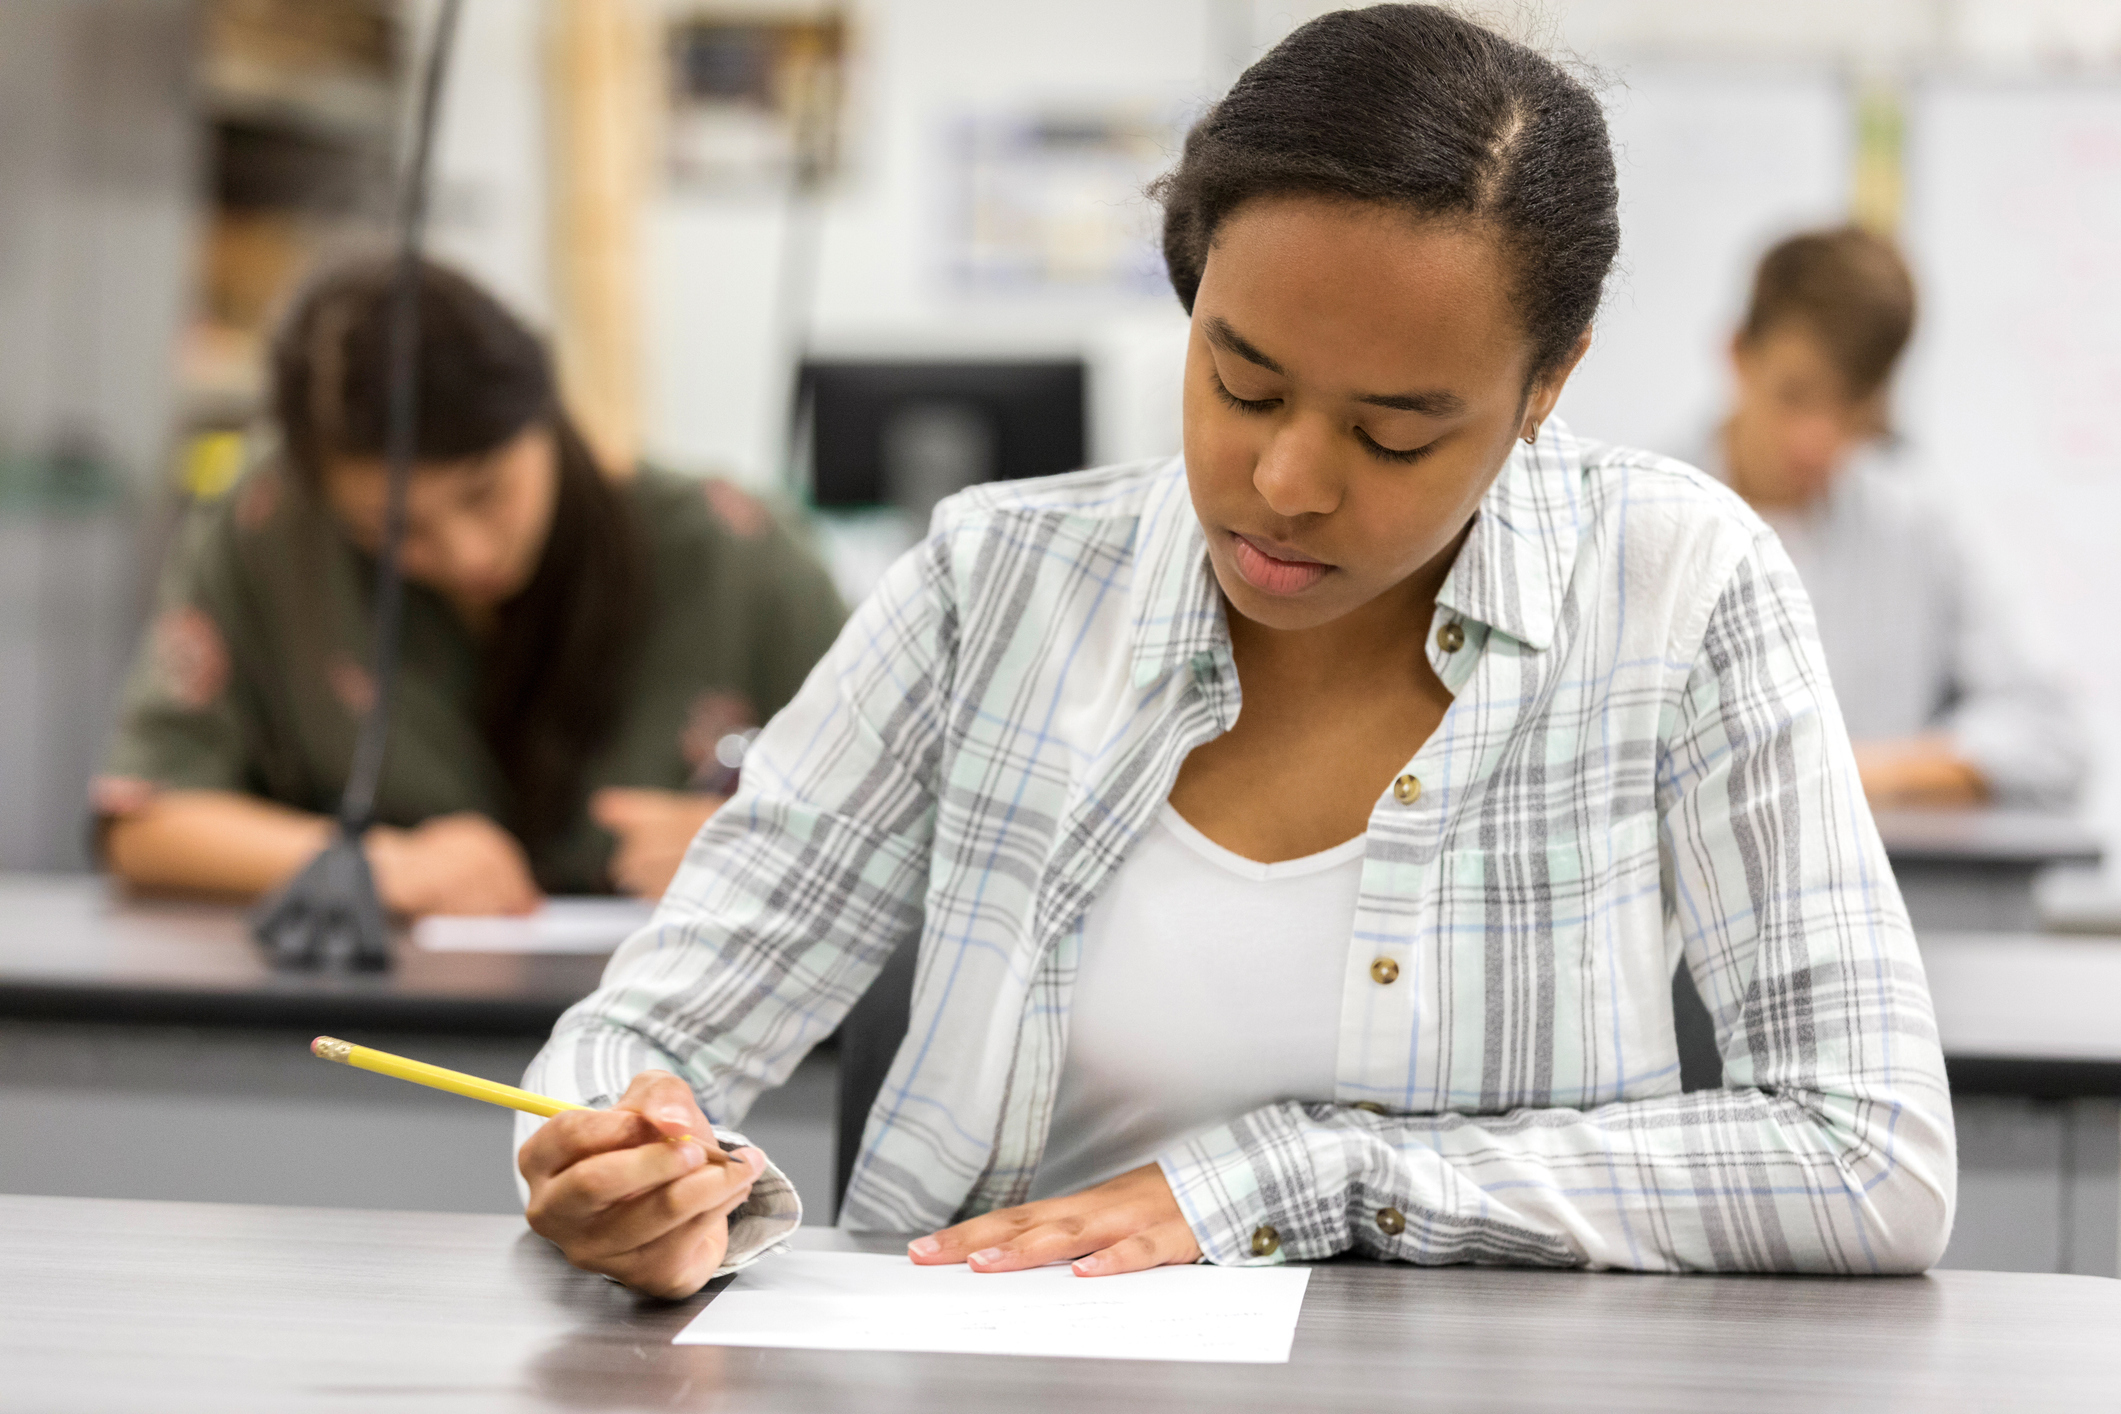 A high school student sits at a black table taking an exam with a yellow No. 2 pencil. Two students sit at black tables behind her taking an exam.